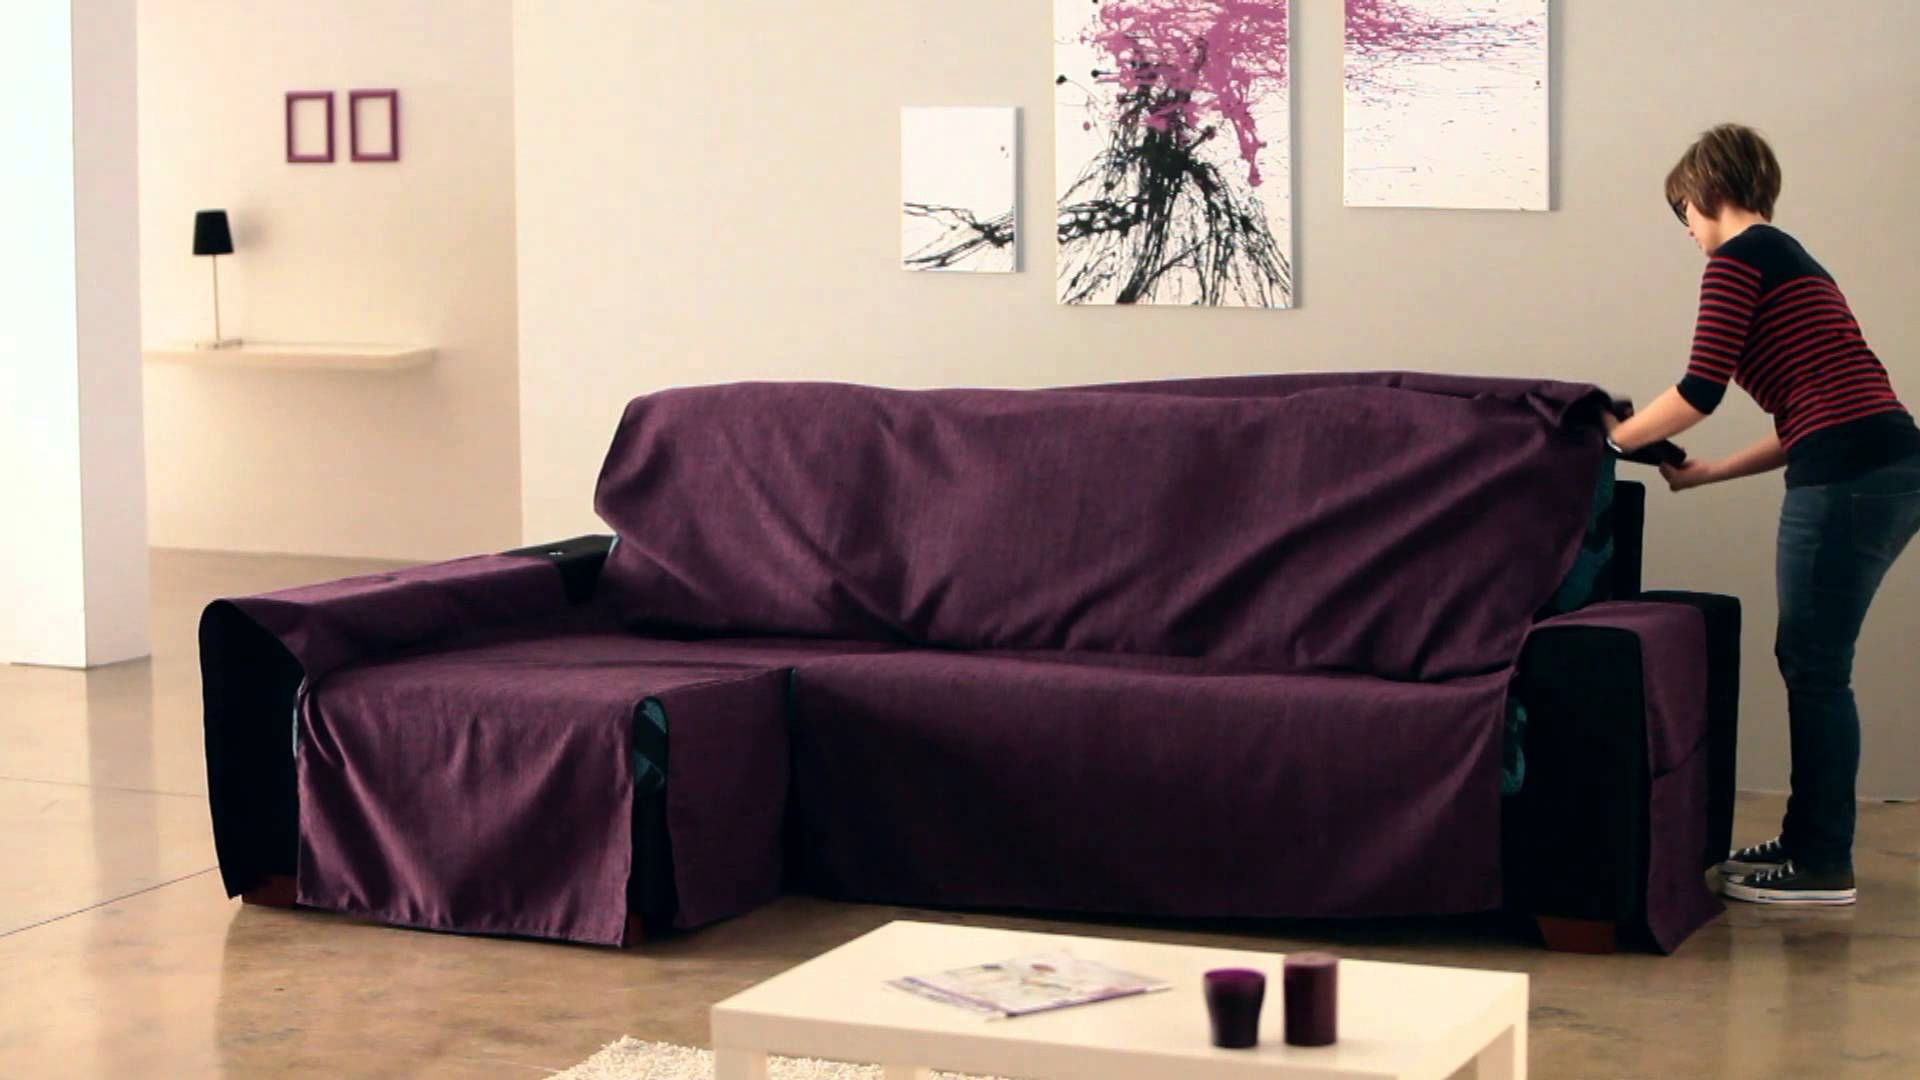 How To Put An Universal Chaise Sofa Covers Youtube Within Chaise Sofa Covers (Image 9 of 15)